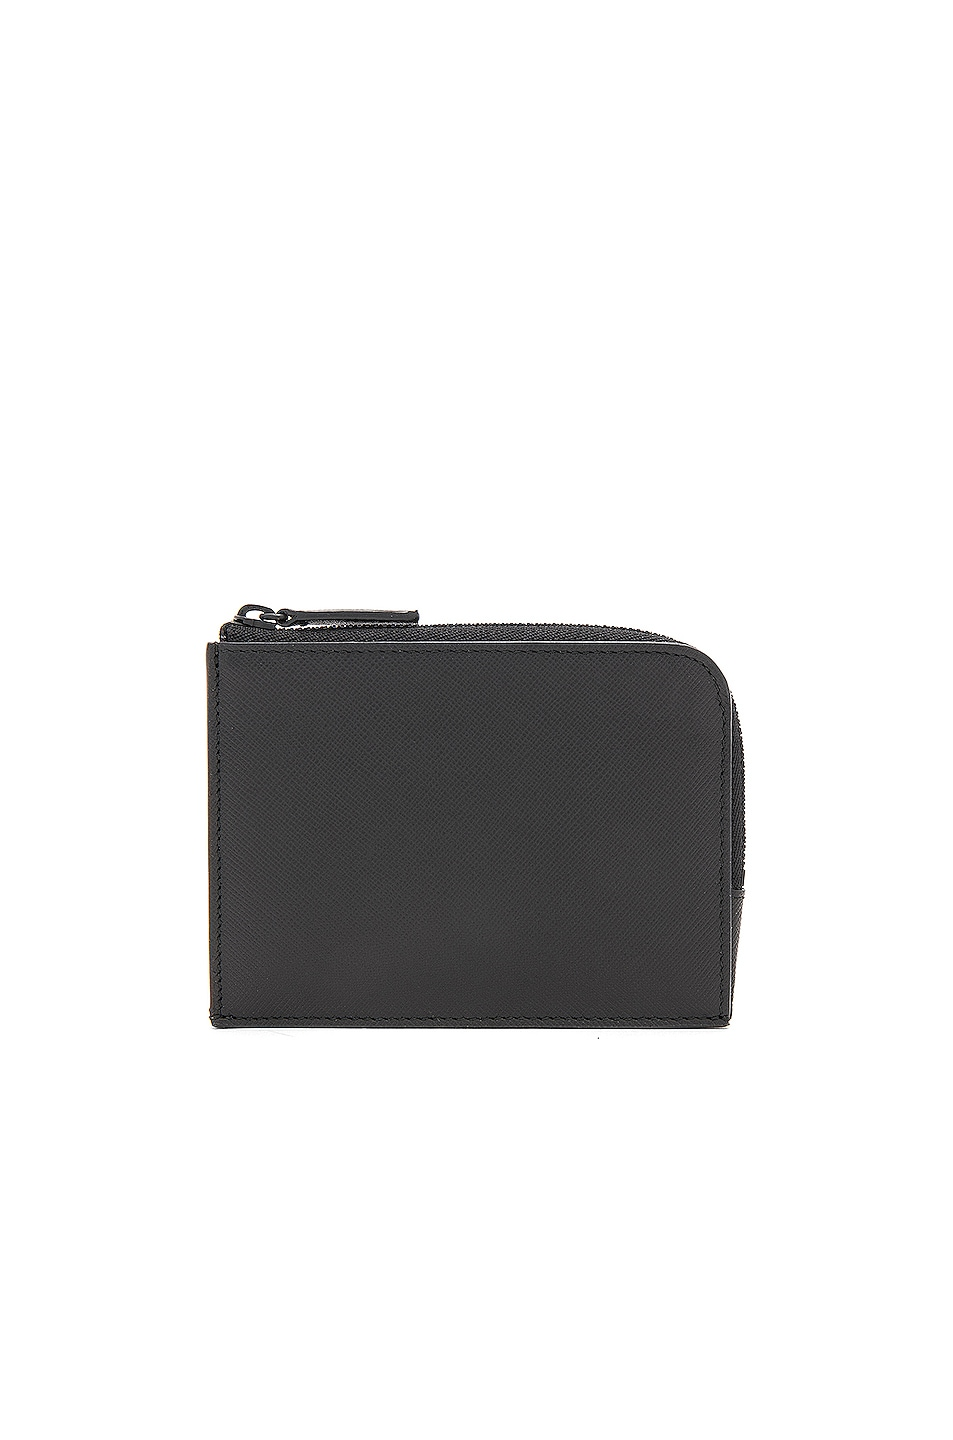 Image 1 of Common Projects Saffiano Leather Zipper Wallet in Black